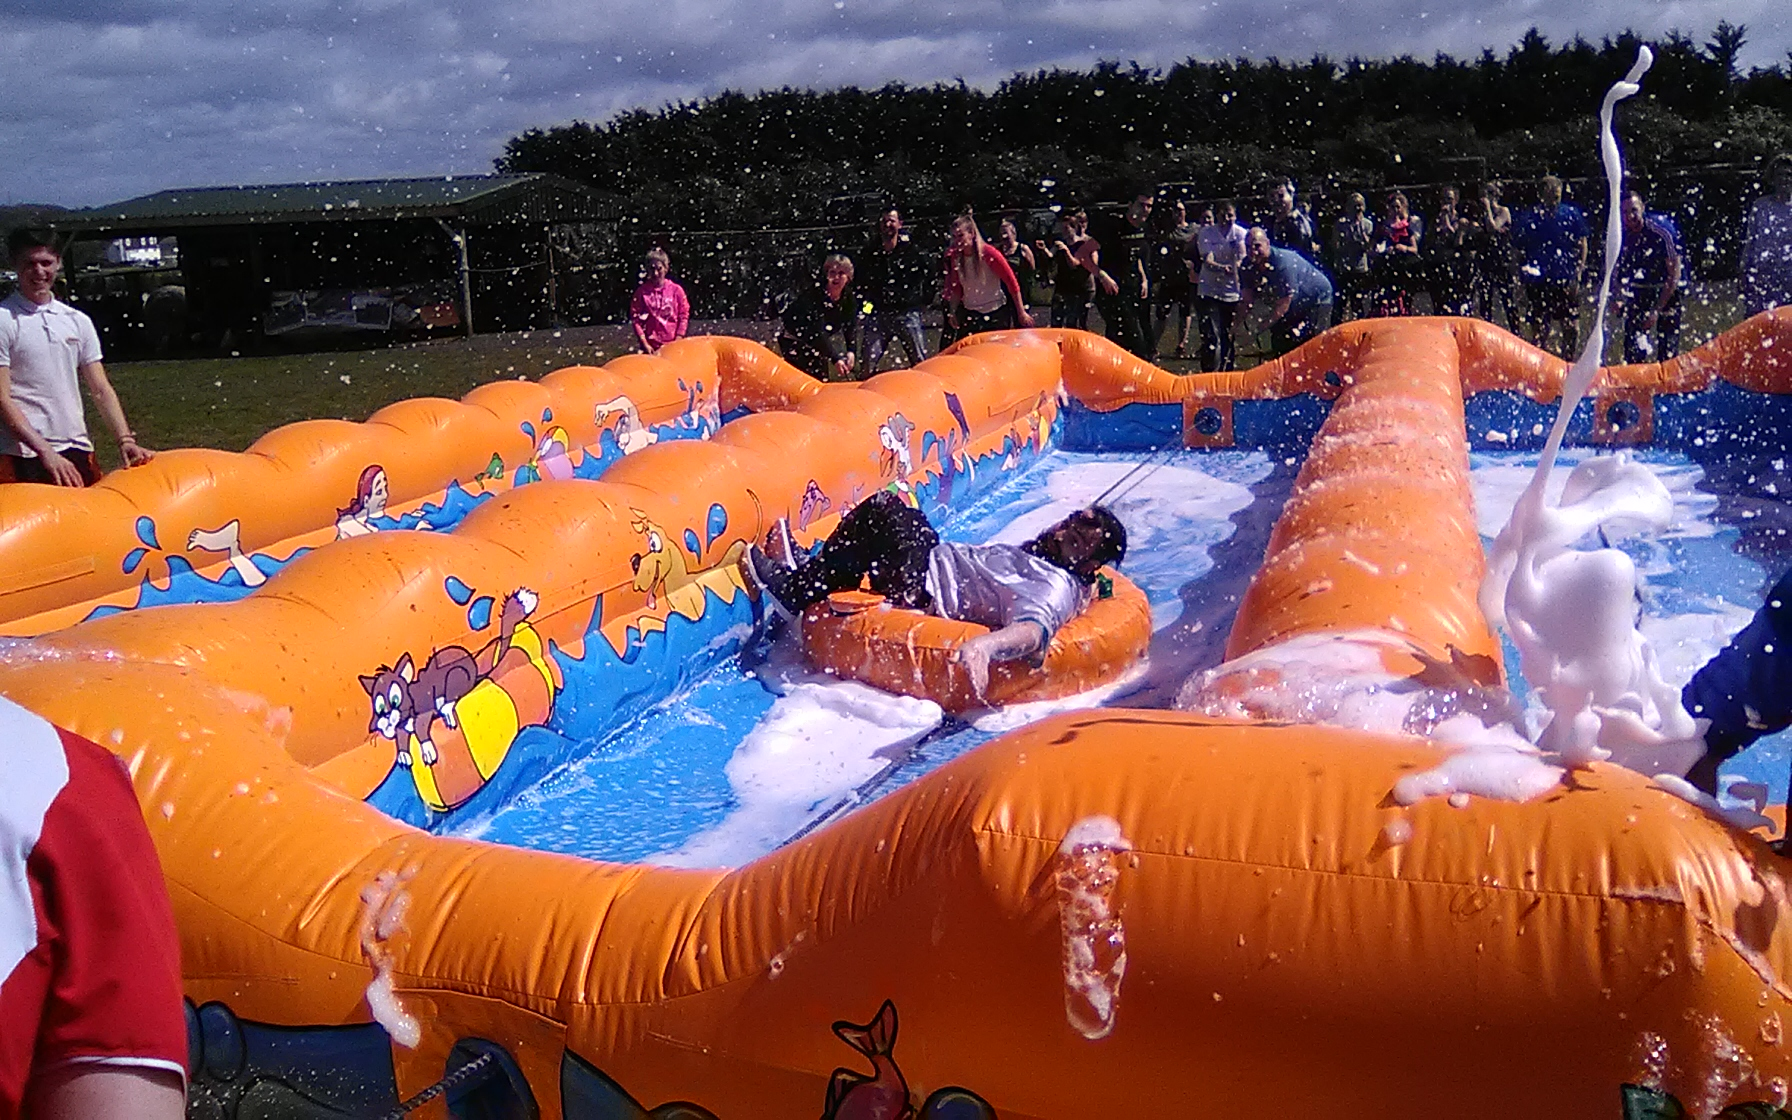 Ride on our ' All hands on deck ' in an awsome relay race , full of foam and fun !